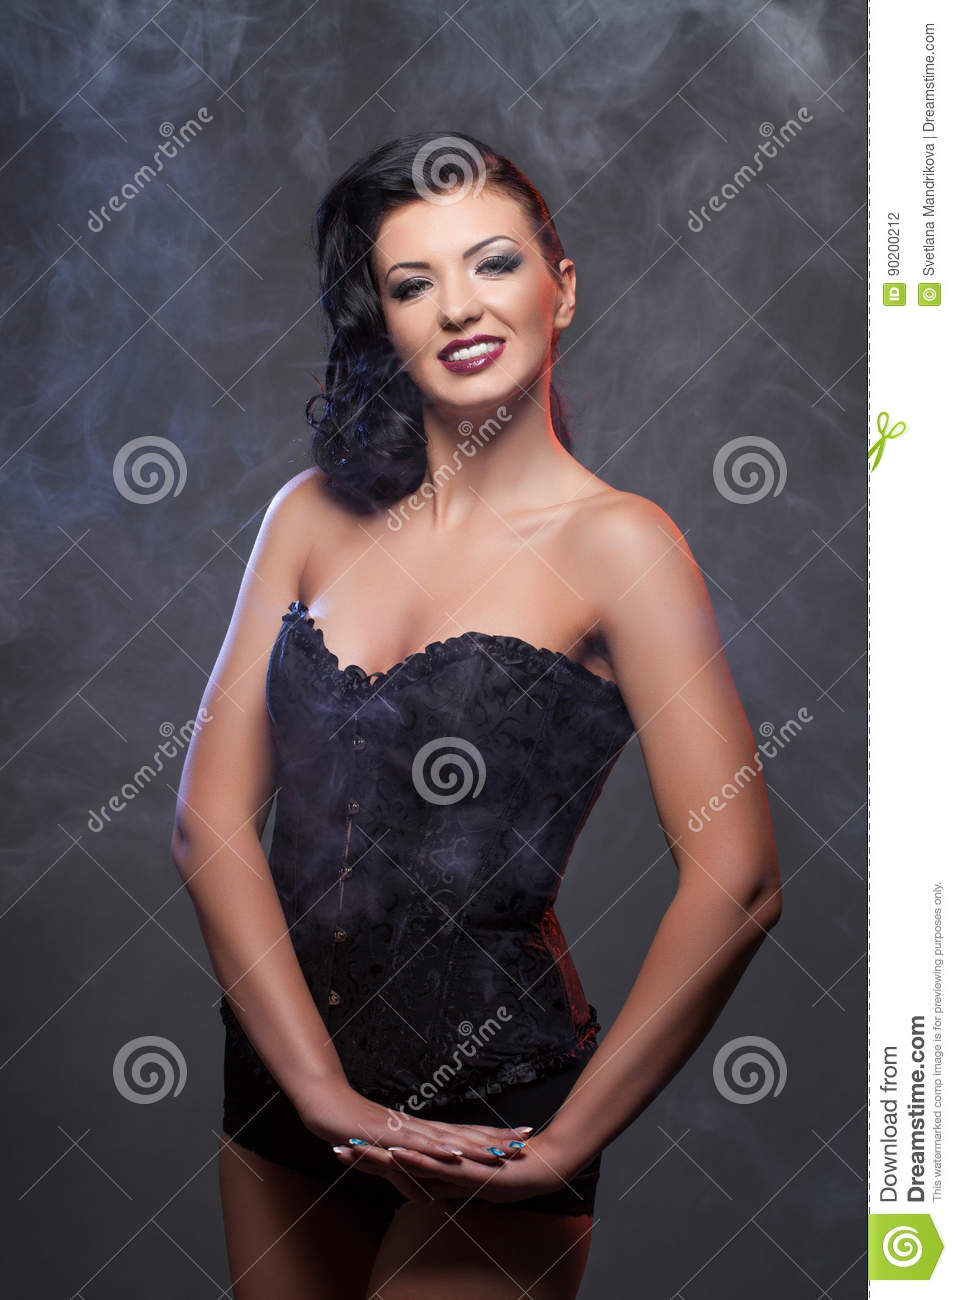 b70a7649dc1 Beautiful brunette young woman in black corset on dark background. Copy  space.